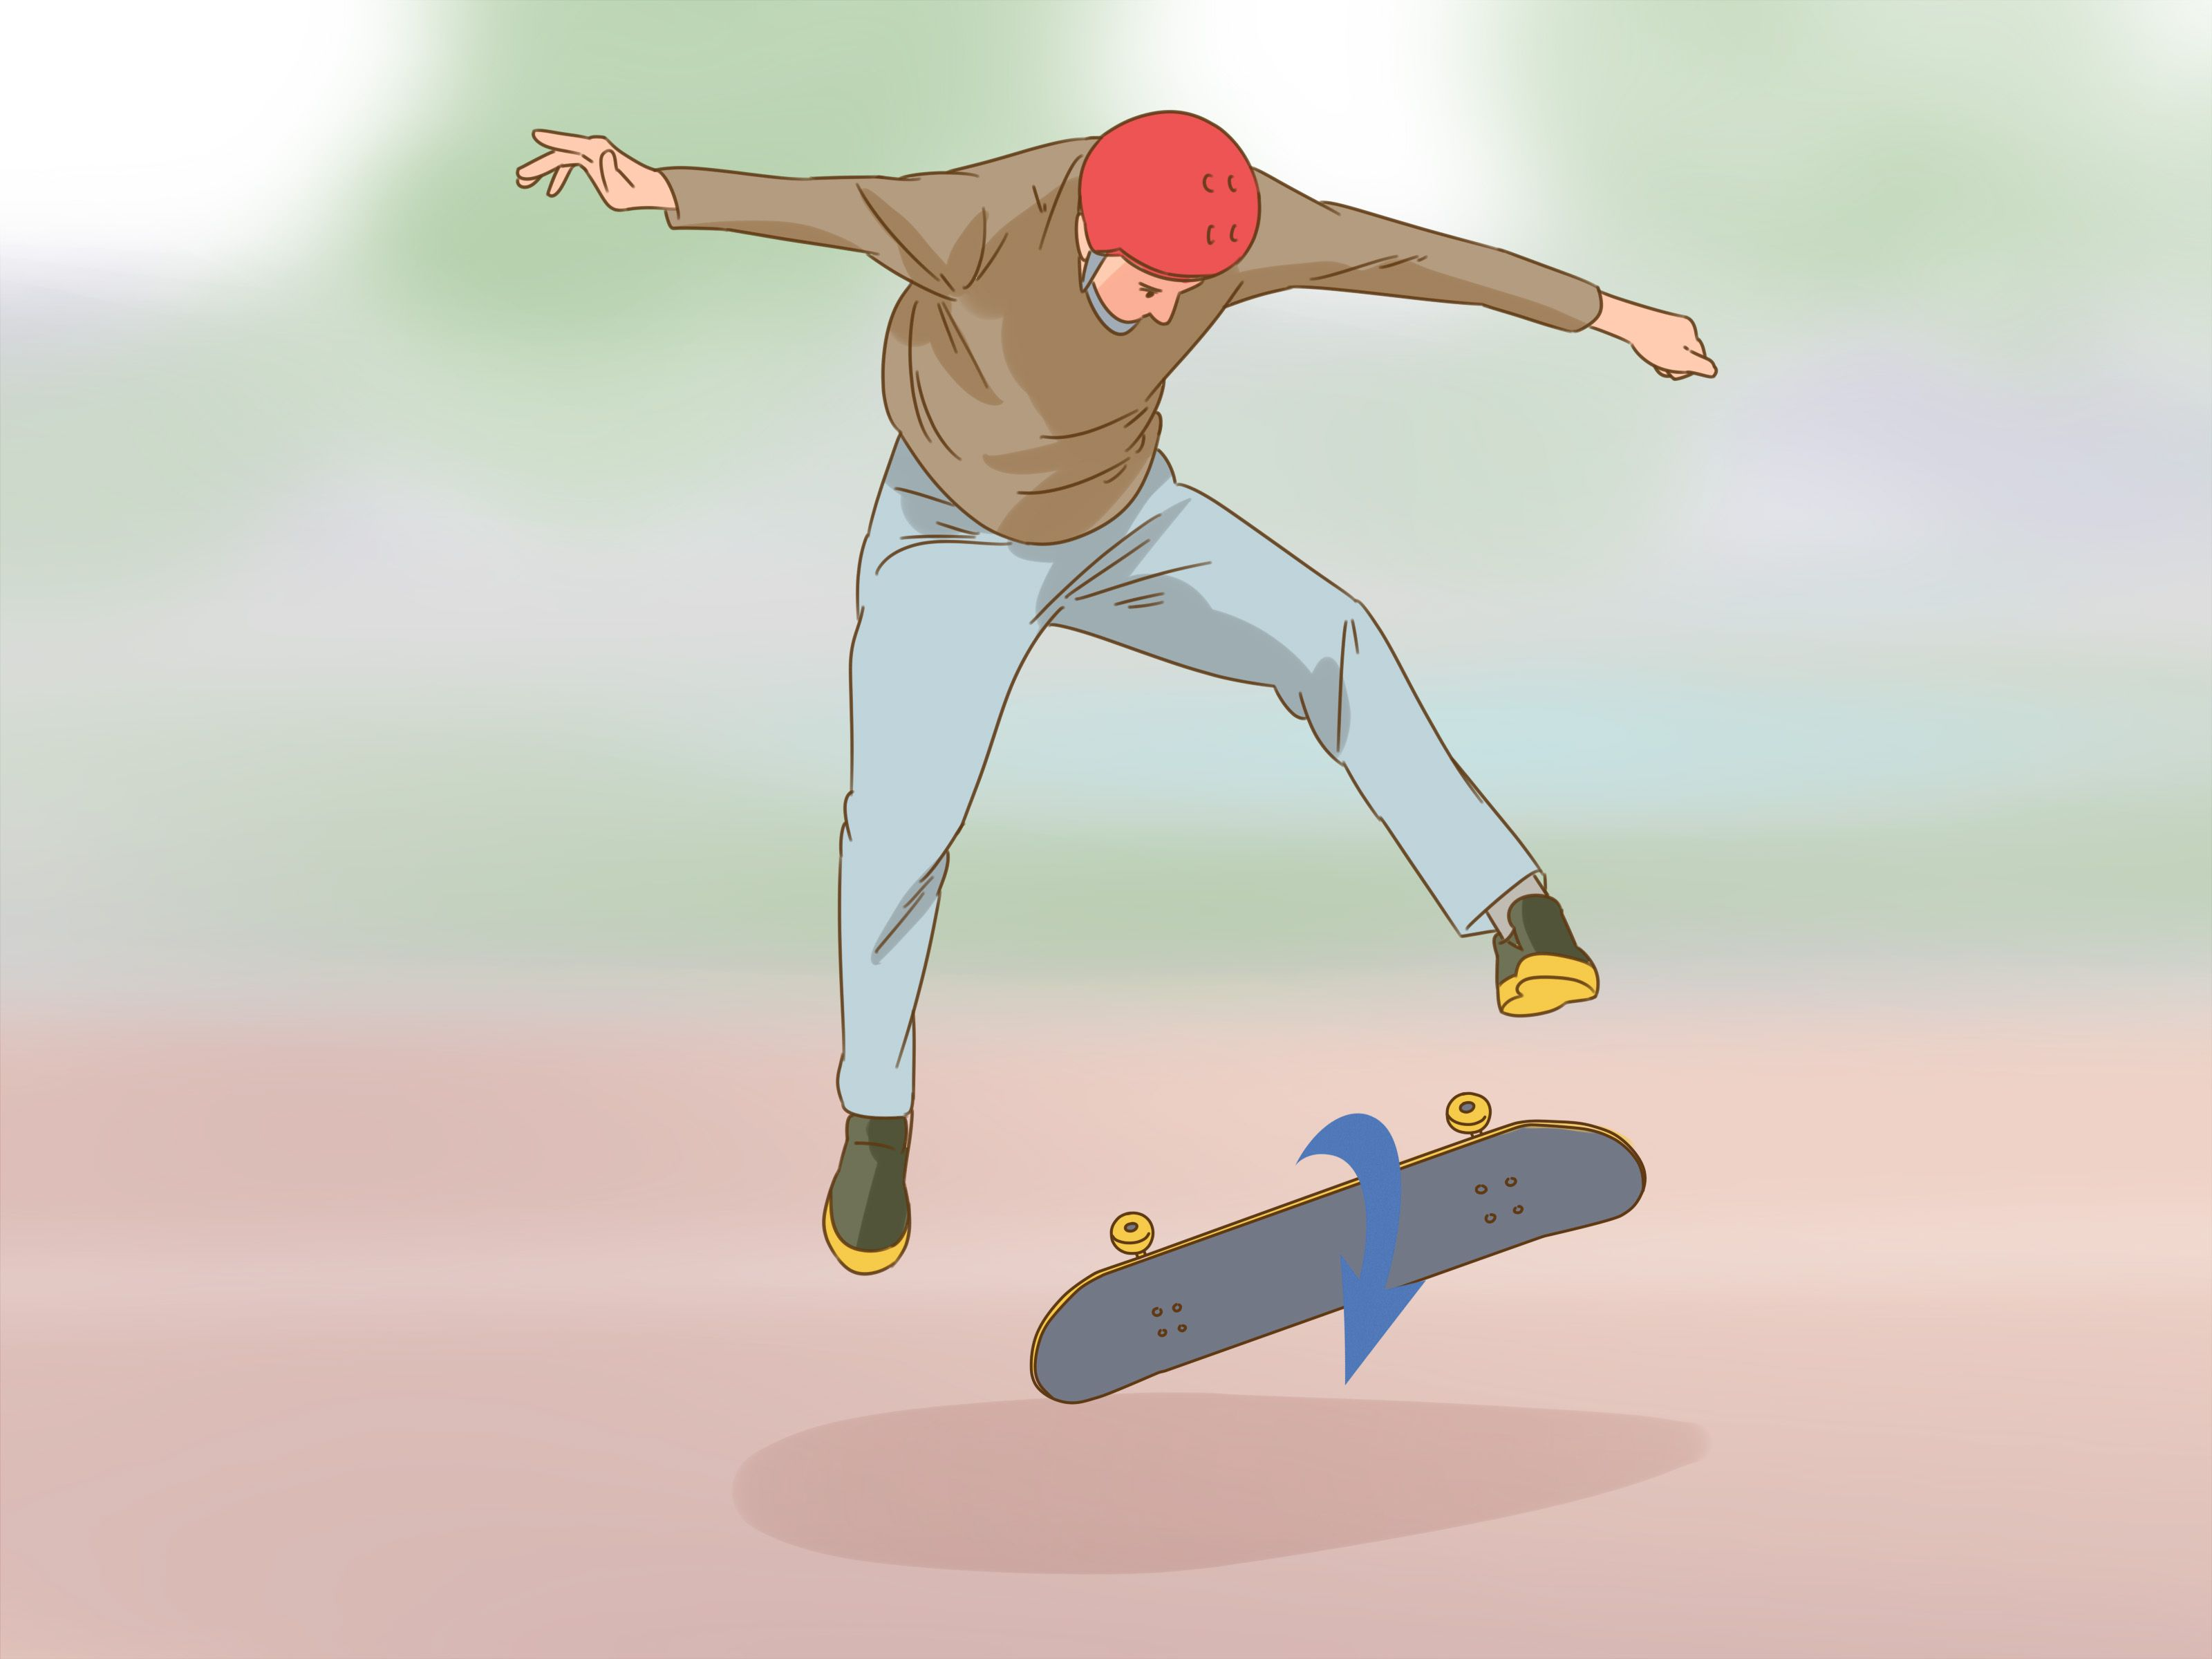 How To Heel Flip The Heel Flip Or Heelflip Is A Beautiful Skateboard Trick And Looks Absolutely Mint When You Re Able To Execute Kicks Knee Up Mirror Image